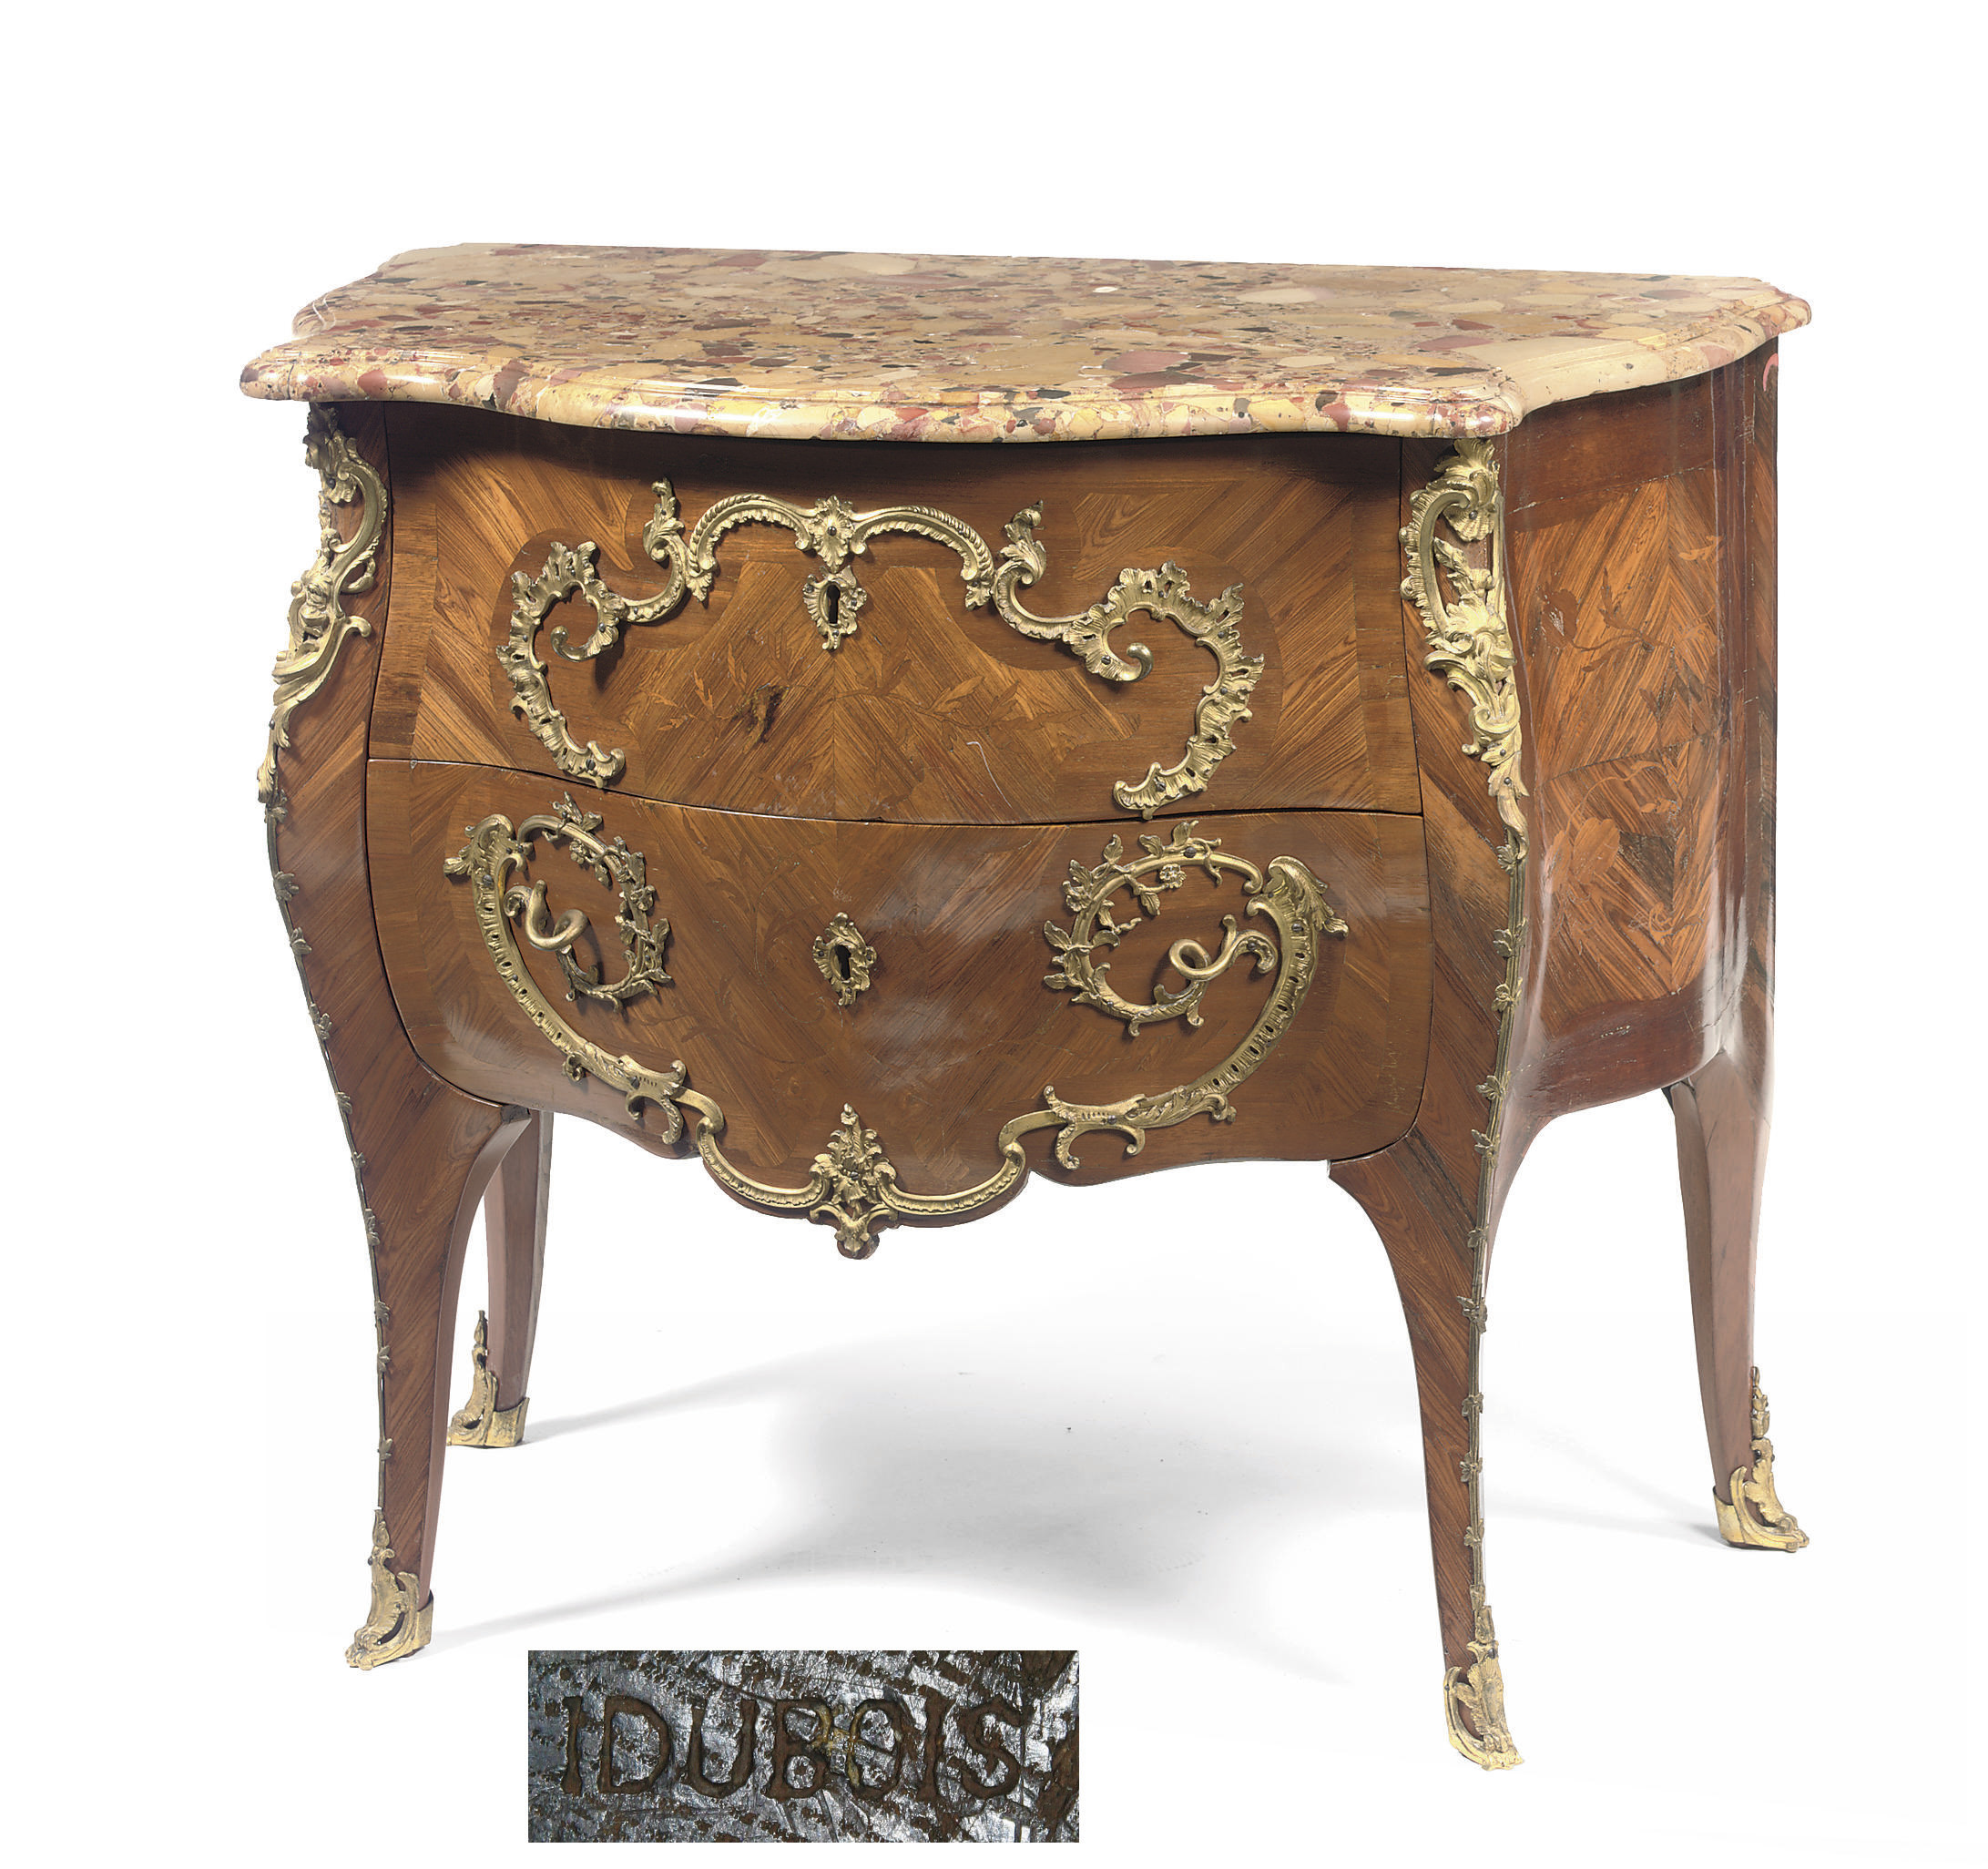 A LOUIS XV ORMOLU-MOUNTED, KINGWOOD, ROSEWOOD AND MAHOGANY MARQUETRY COMMODE